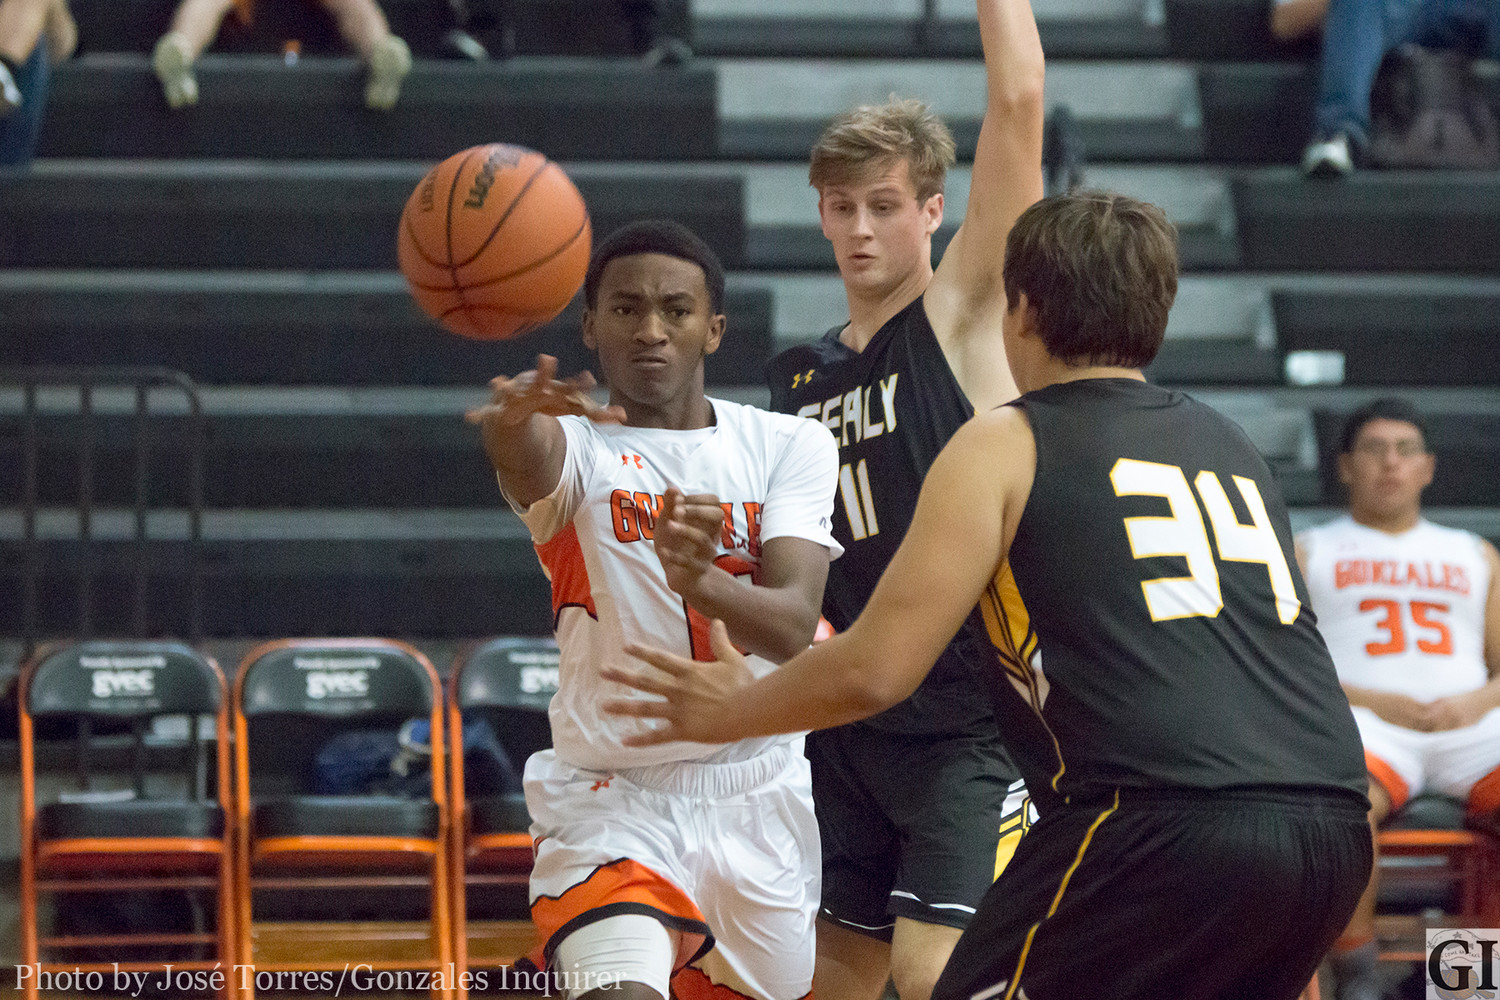 Trevion McNeil (10) passes the ball in Gonzales' 55-45 loss.